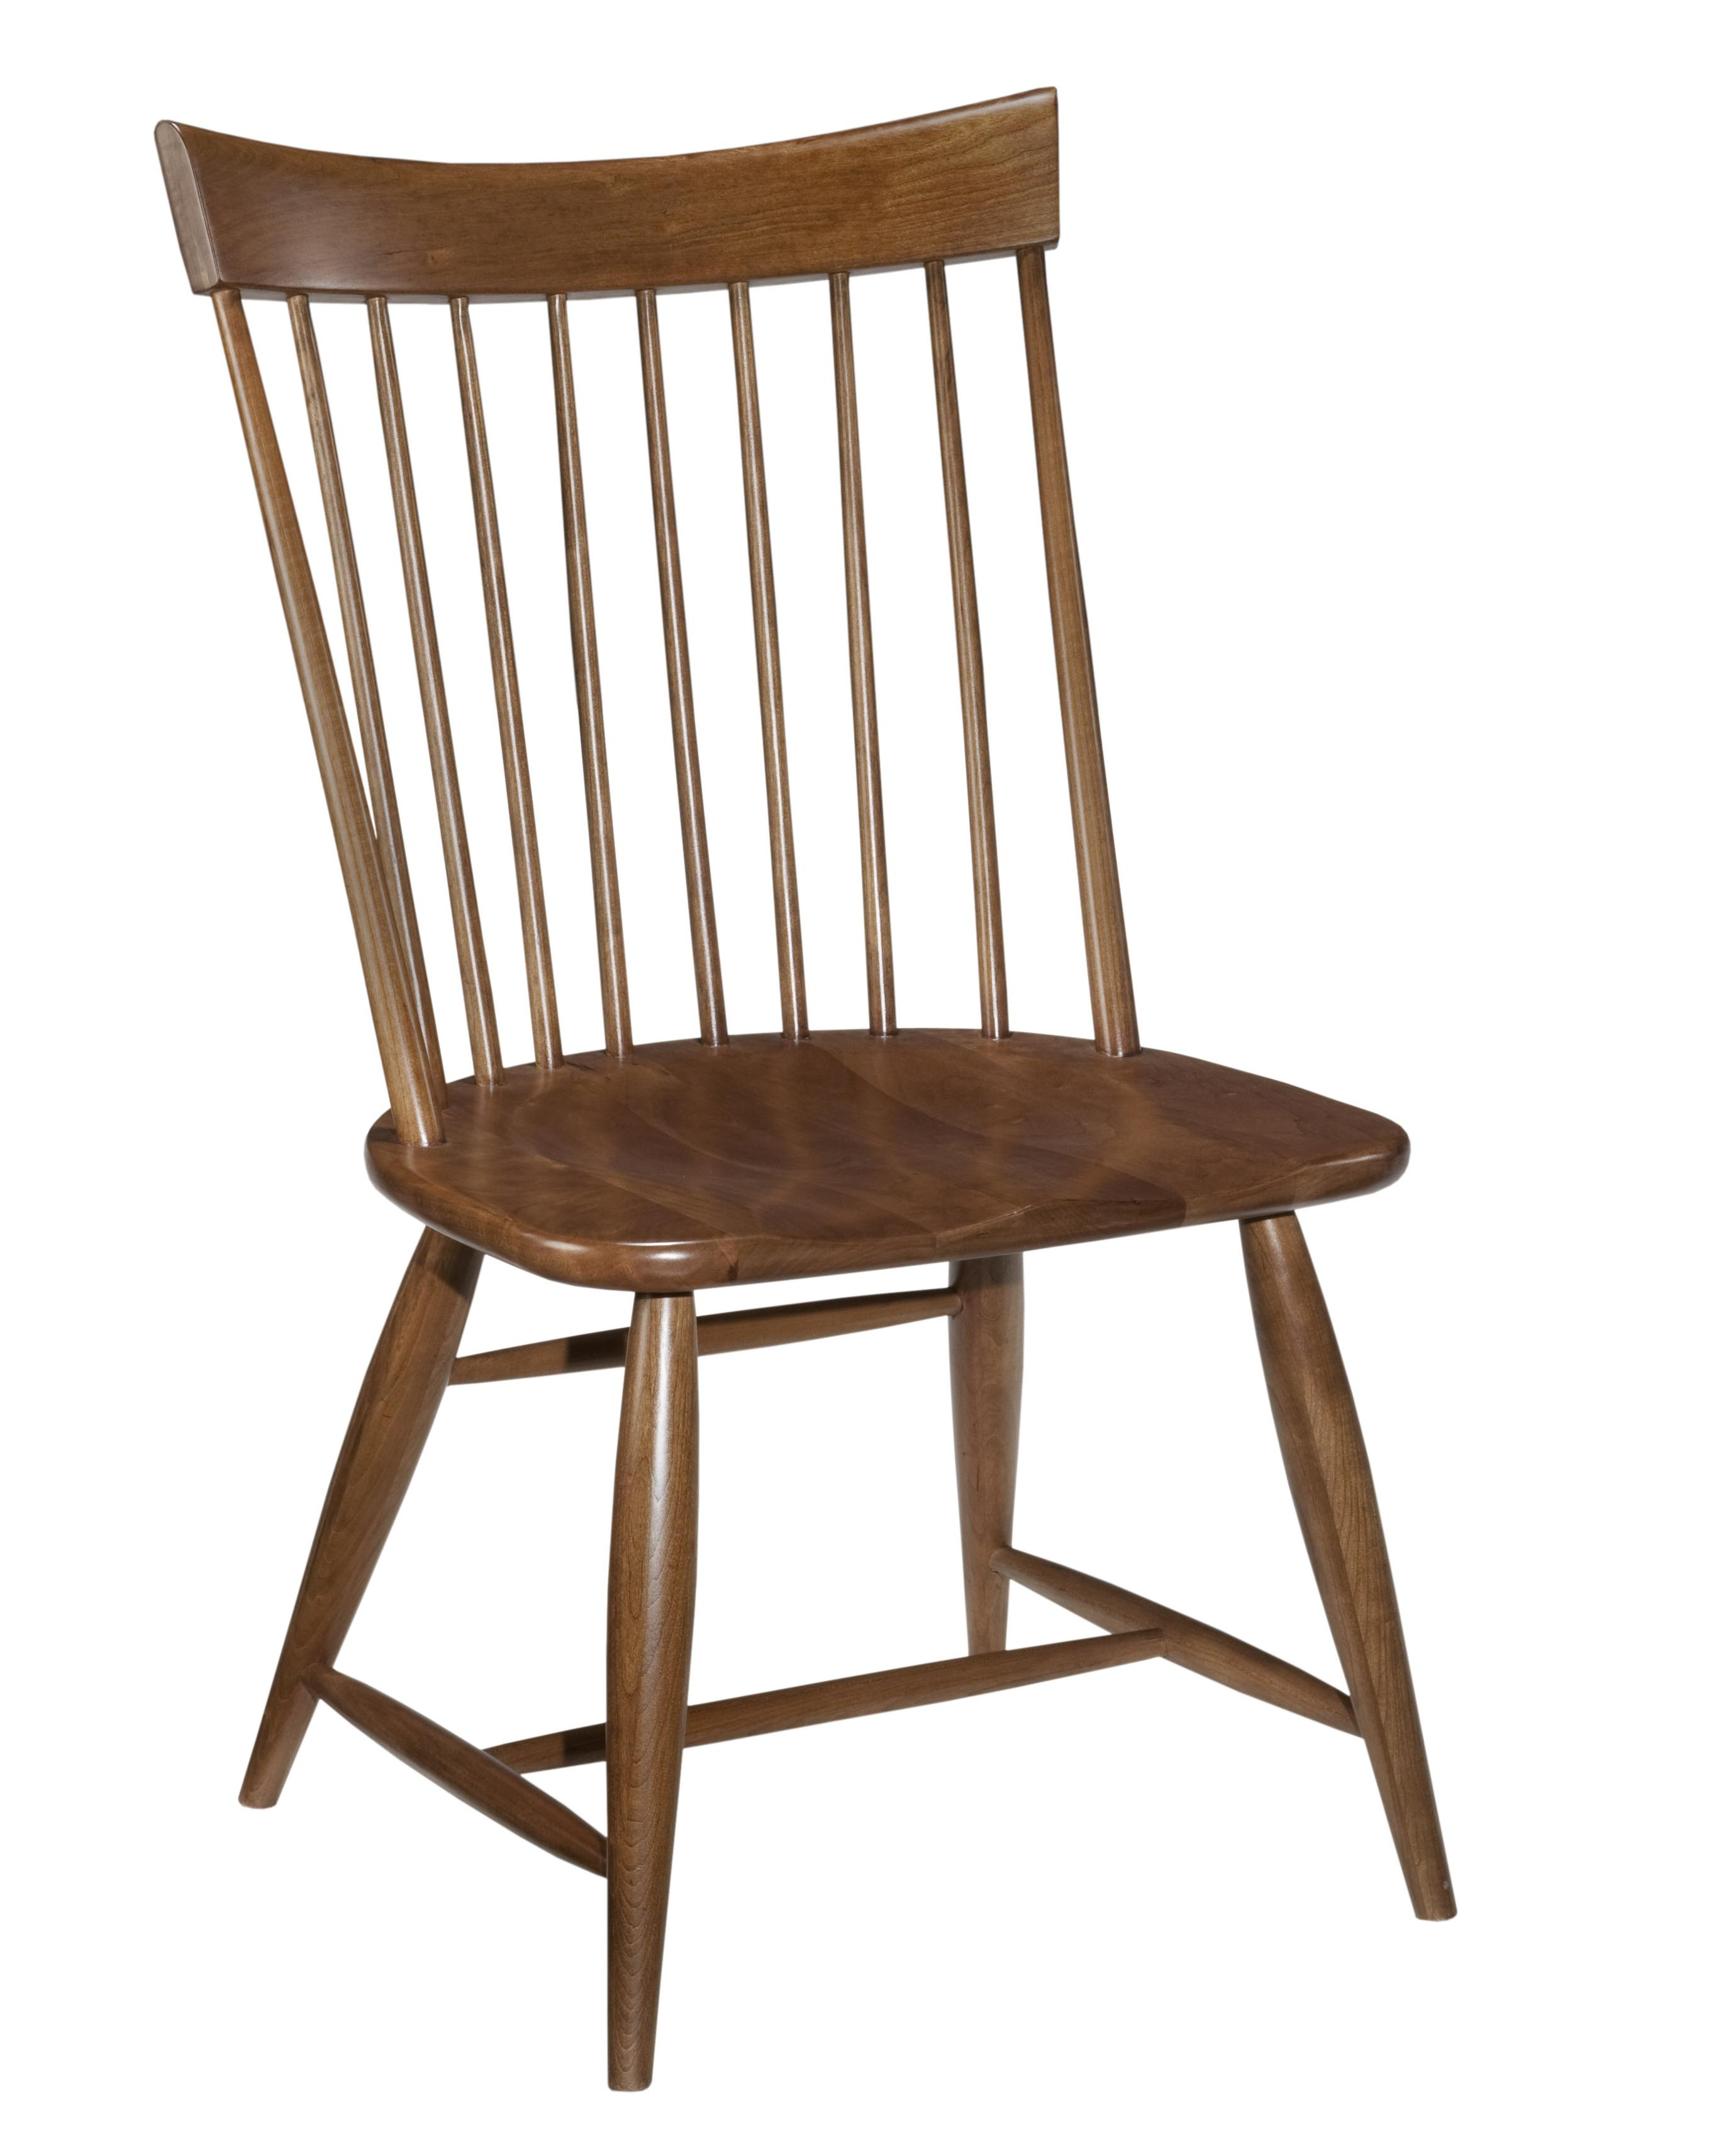 Kincaid Furniture Cherry Park Windsor Side Chair - Item Number: 63-063